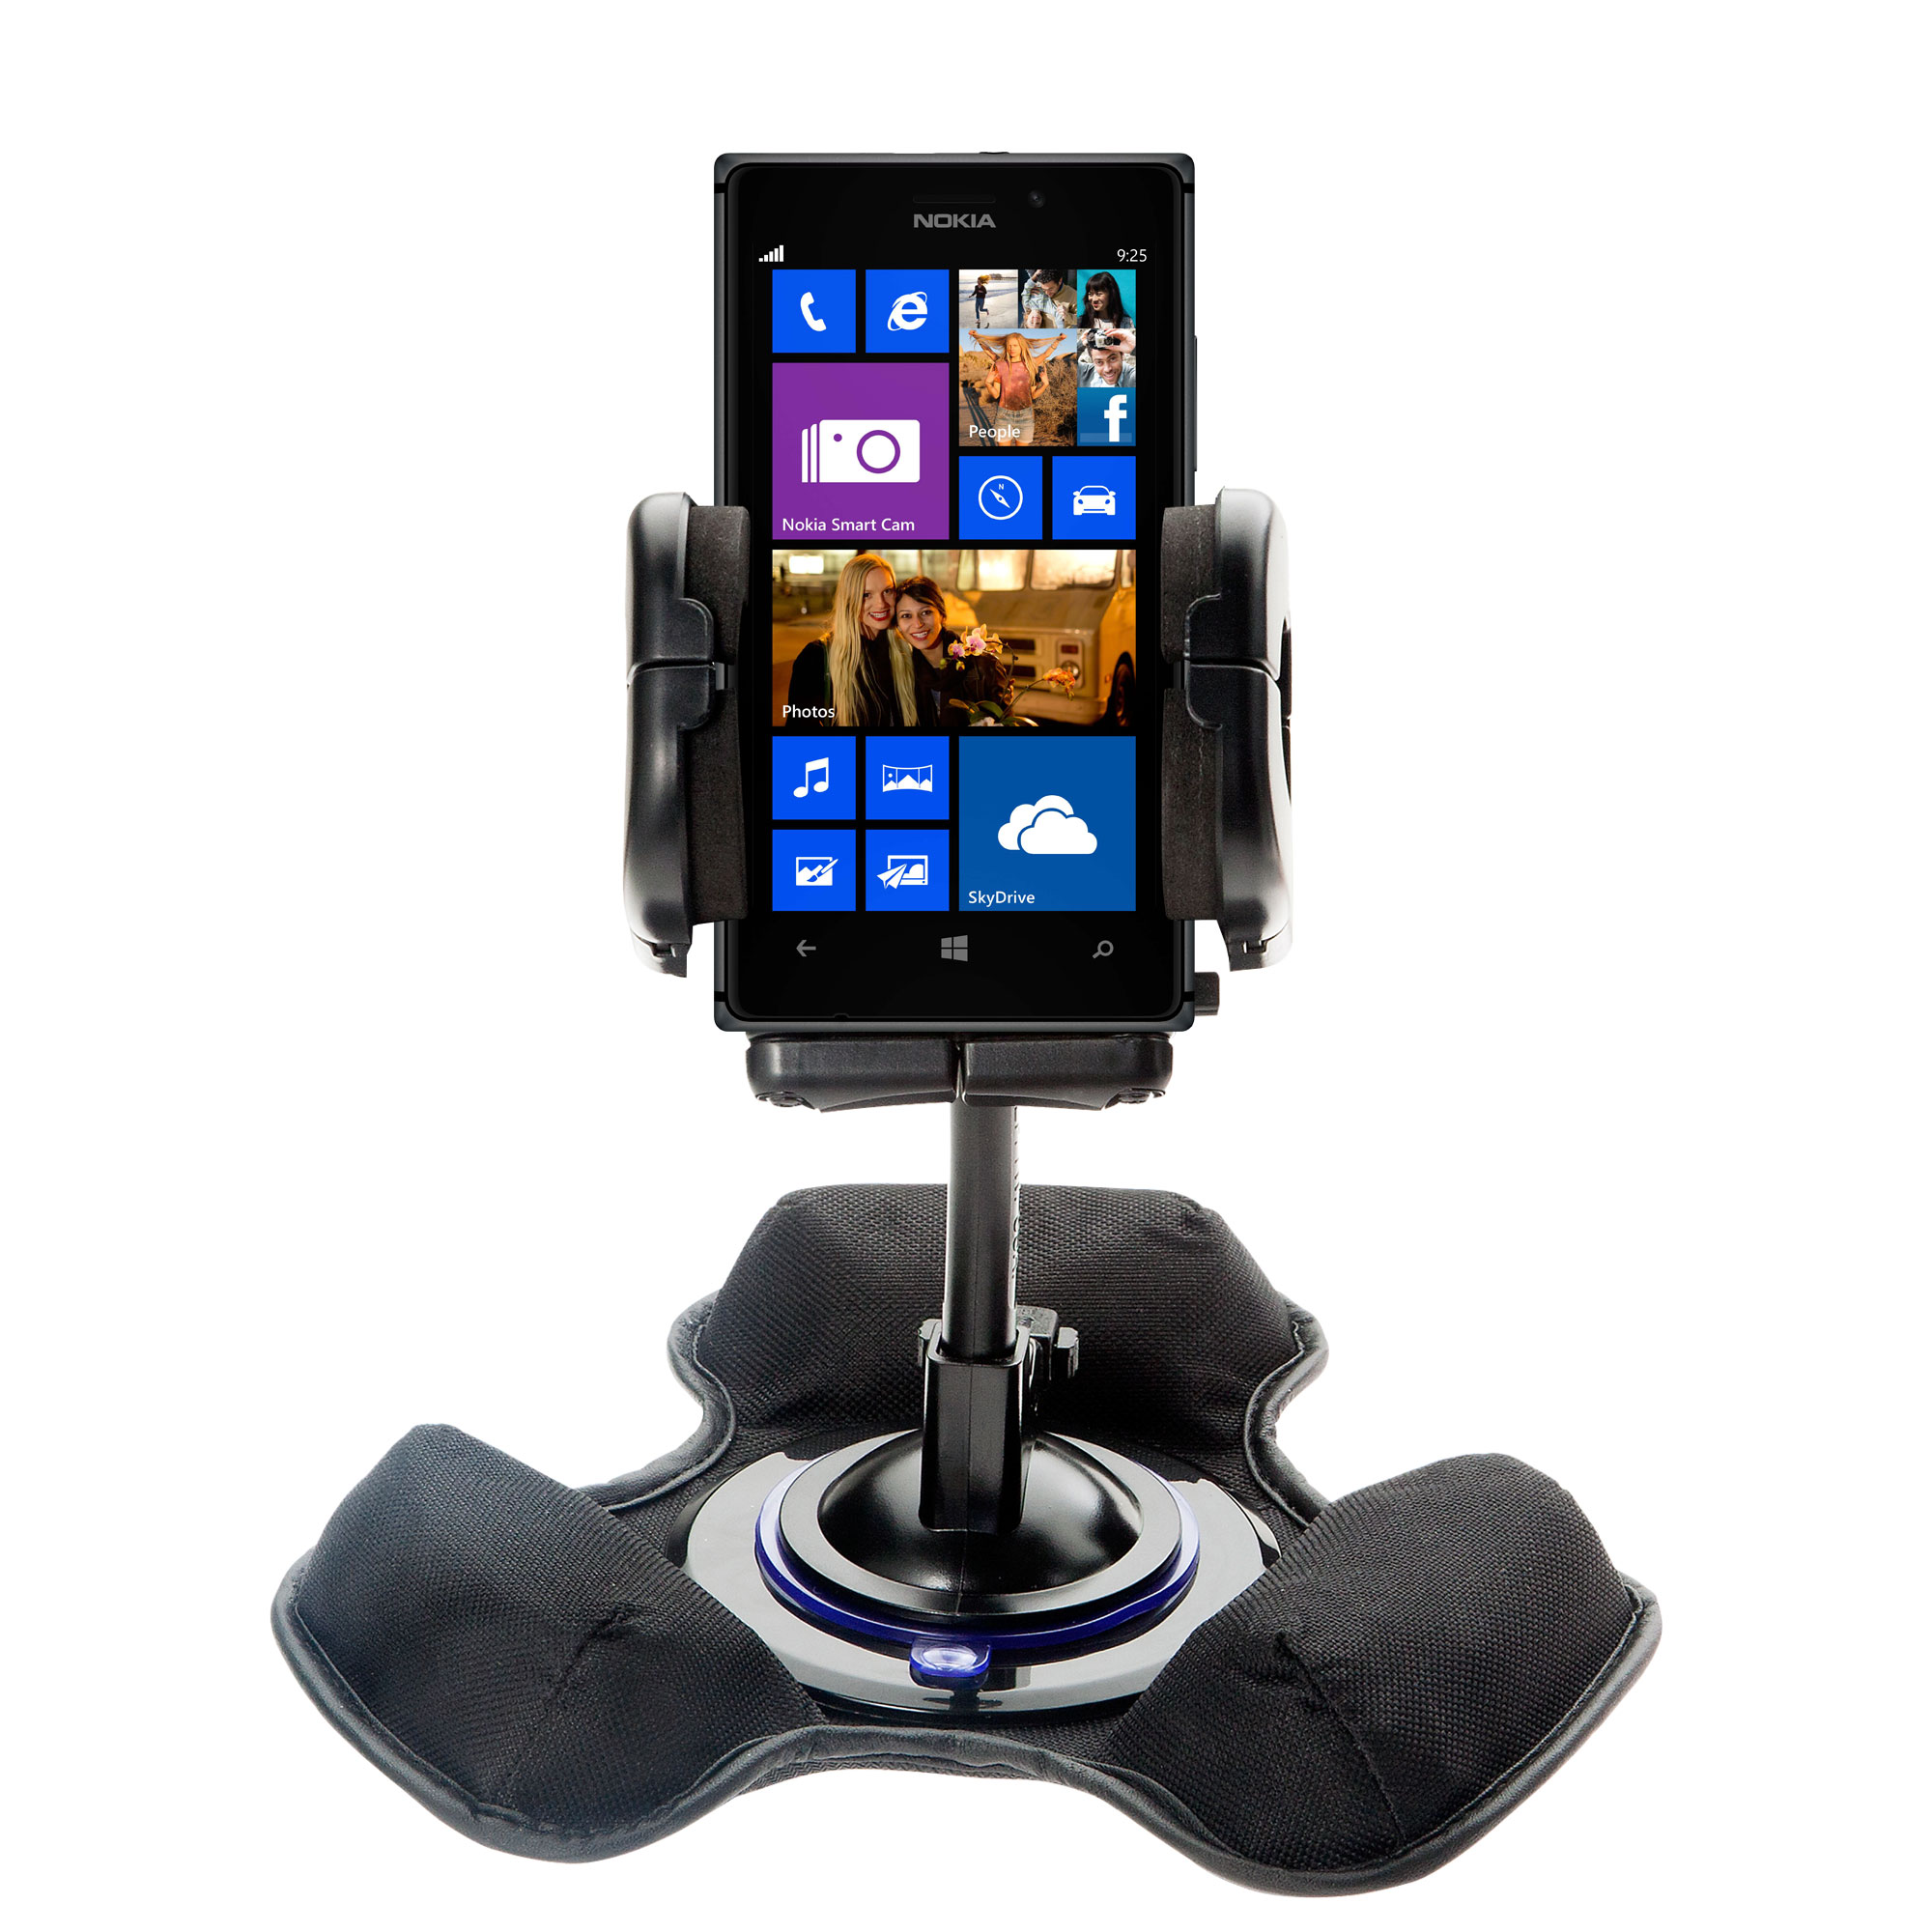 Car / Truck Vehicle Holder Mounting System for Nokia Lumia 925 Includes Unique Flexible Windshield Suction and Universal Dashboard Mount Options